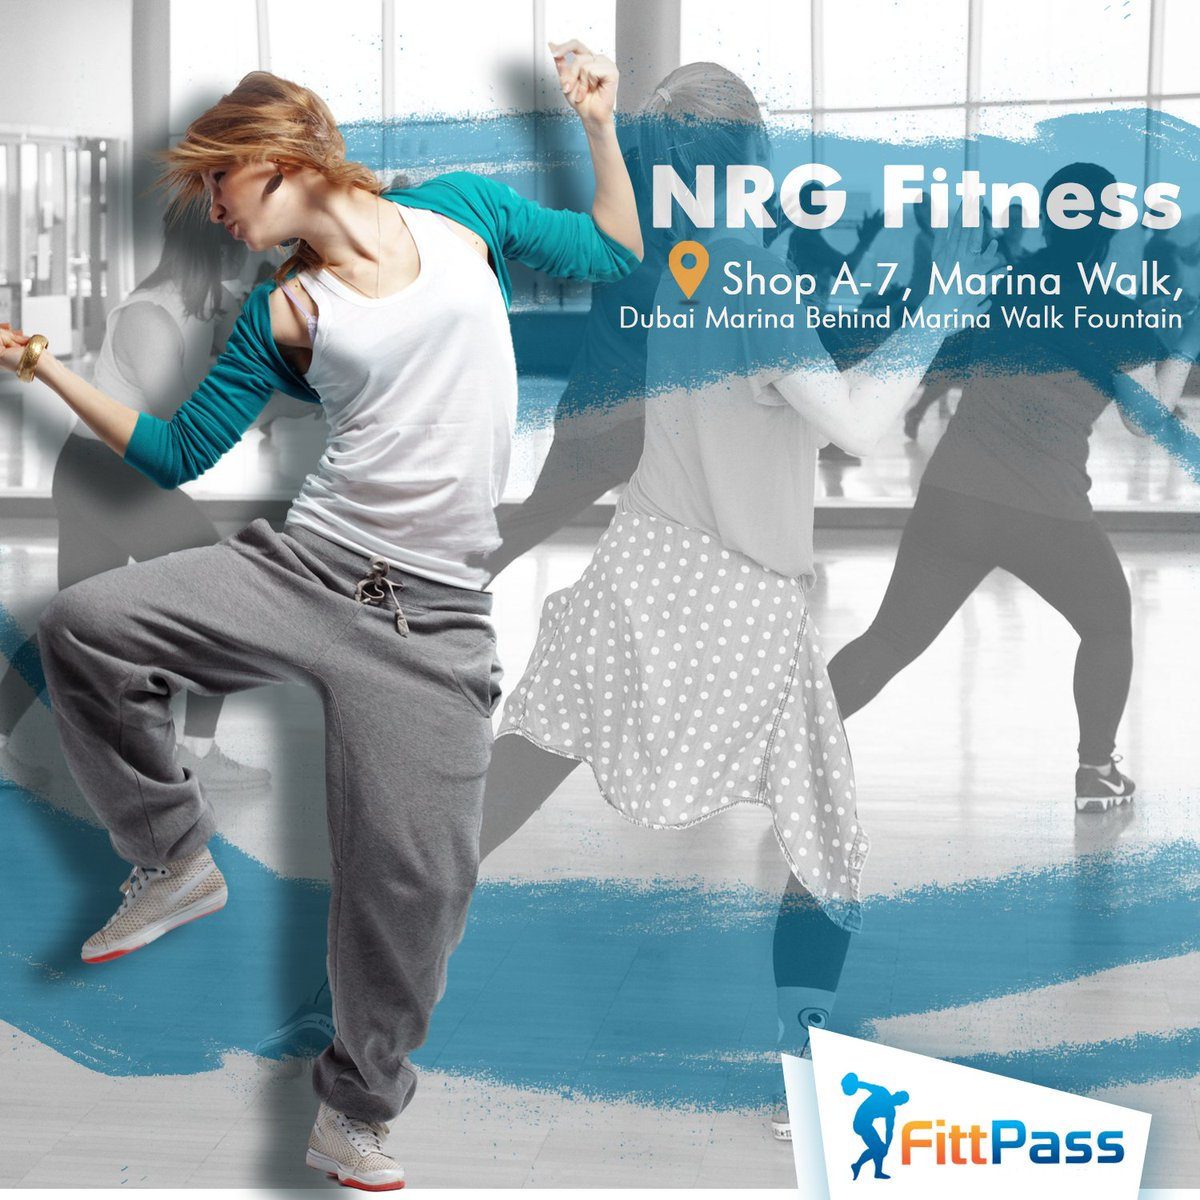 Looking for a boutique studio that will help you find the fun in movement? Then check out NRG Fitness in Dubai Marina! Buy a pass and save up to 18% only on http://FittPass.com  => https://bit.ly/2vKKSAj   #NRGFitness #DubaiFit #DubaiFitFam #DubaiMarina